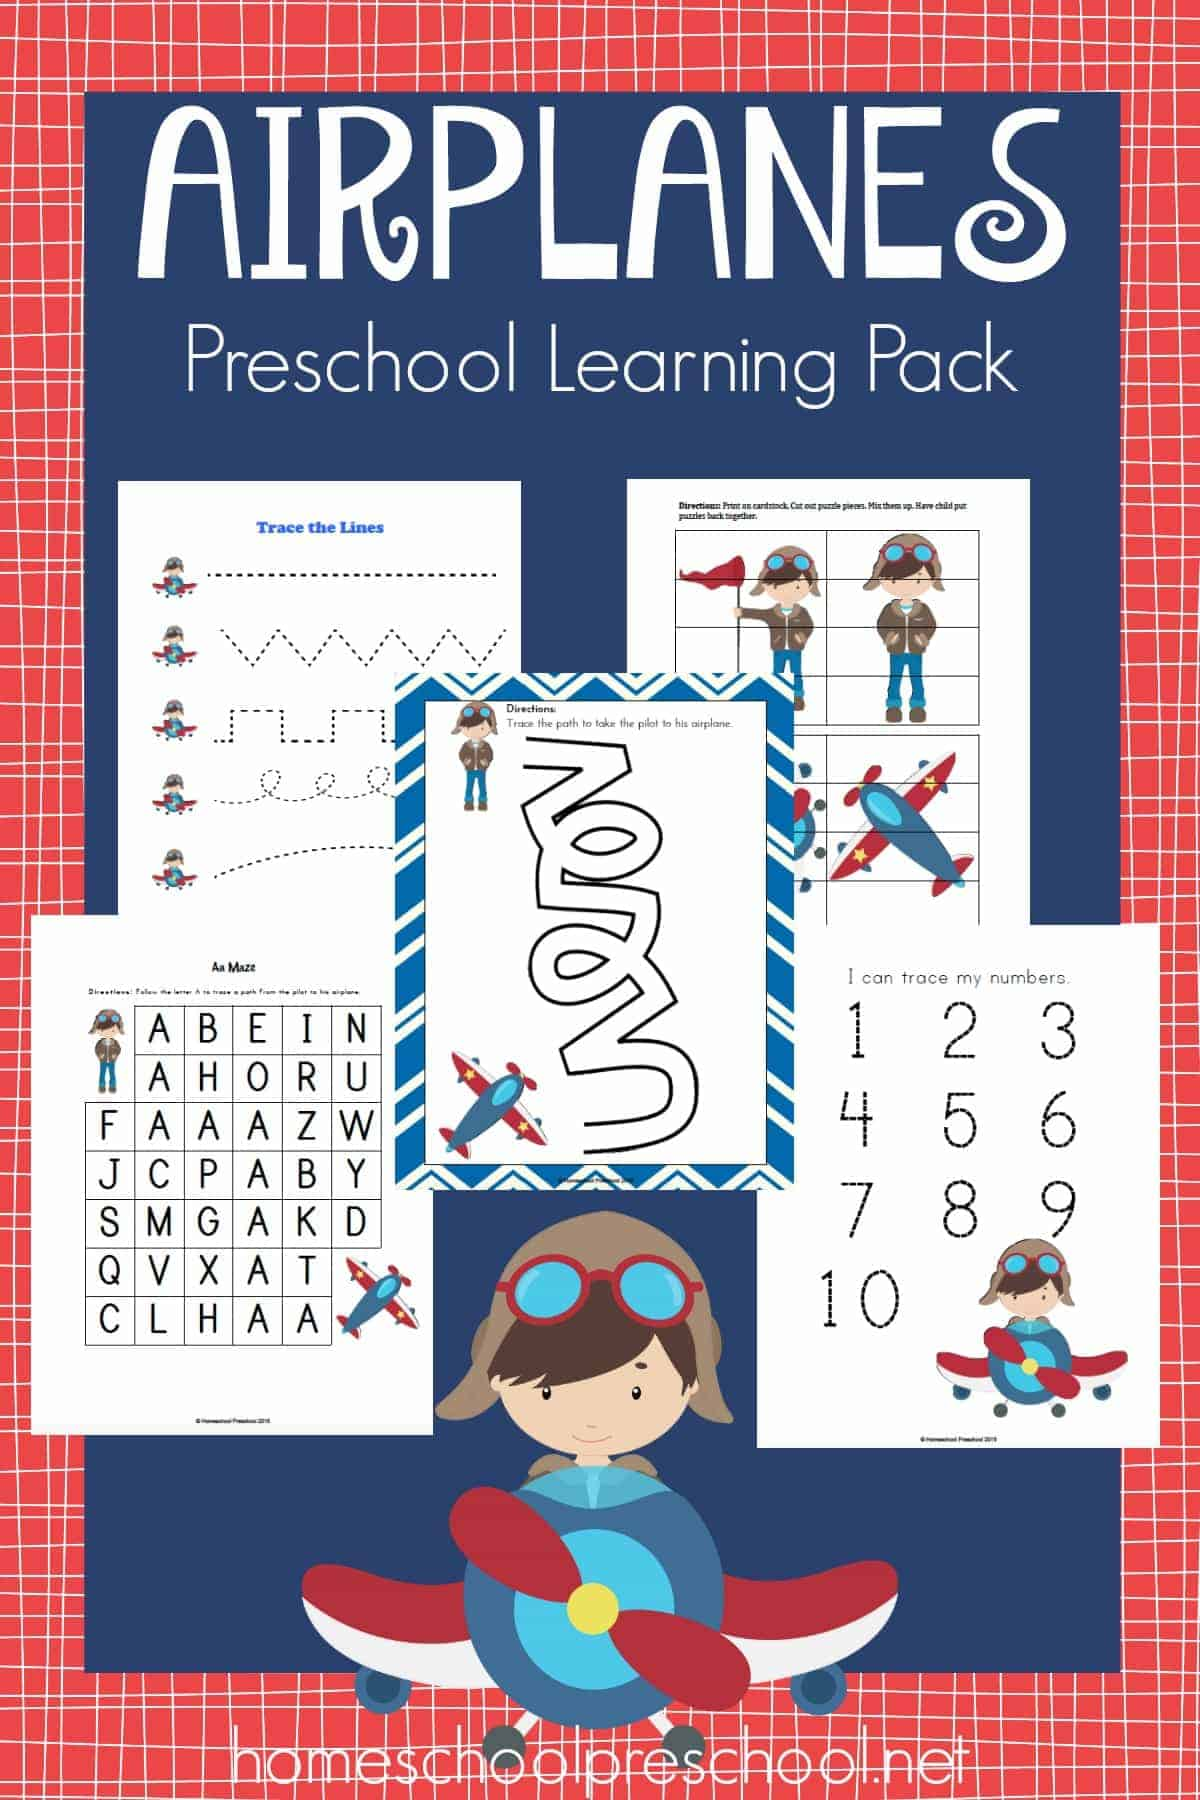 Free Airplanes Preschool Learning Pack